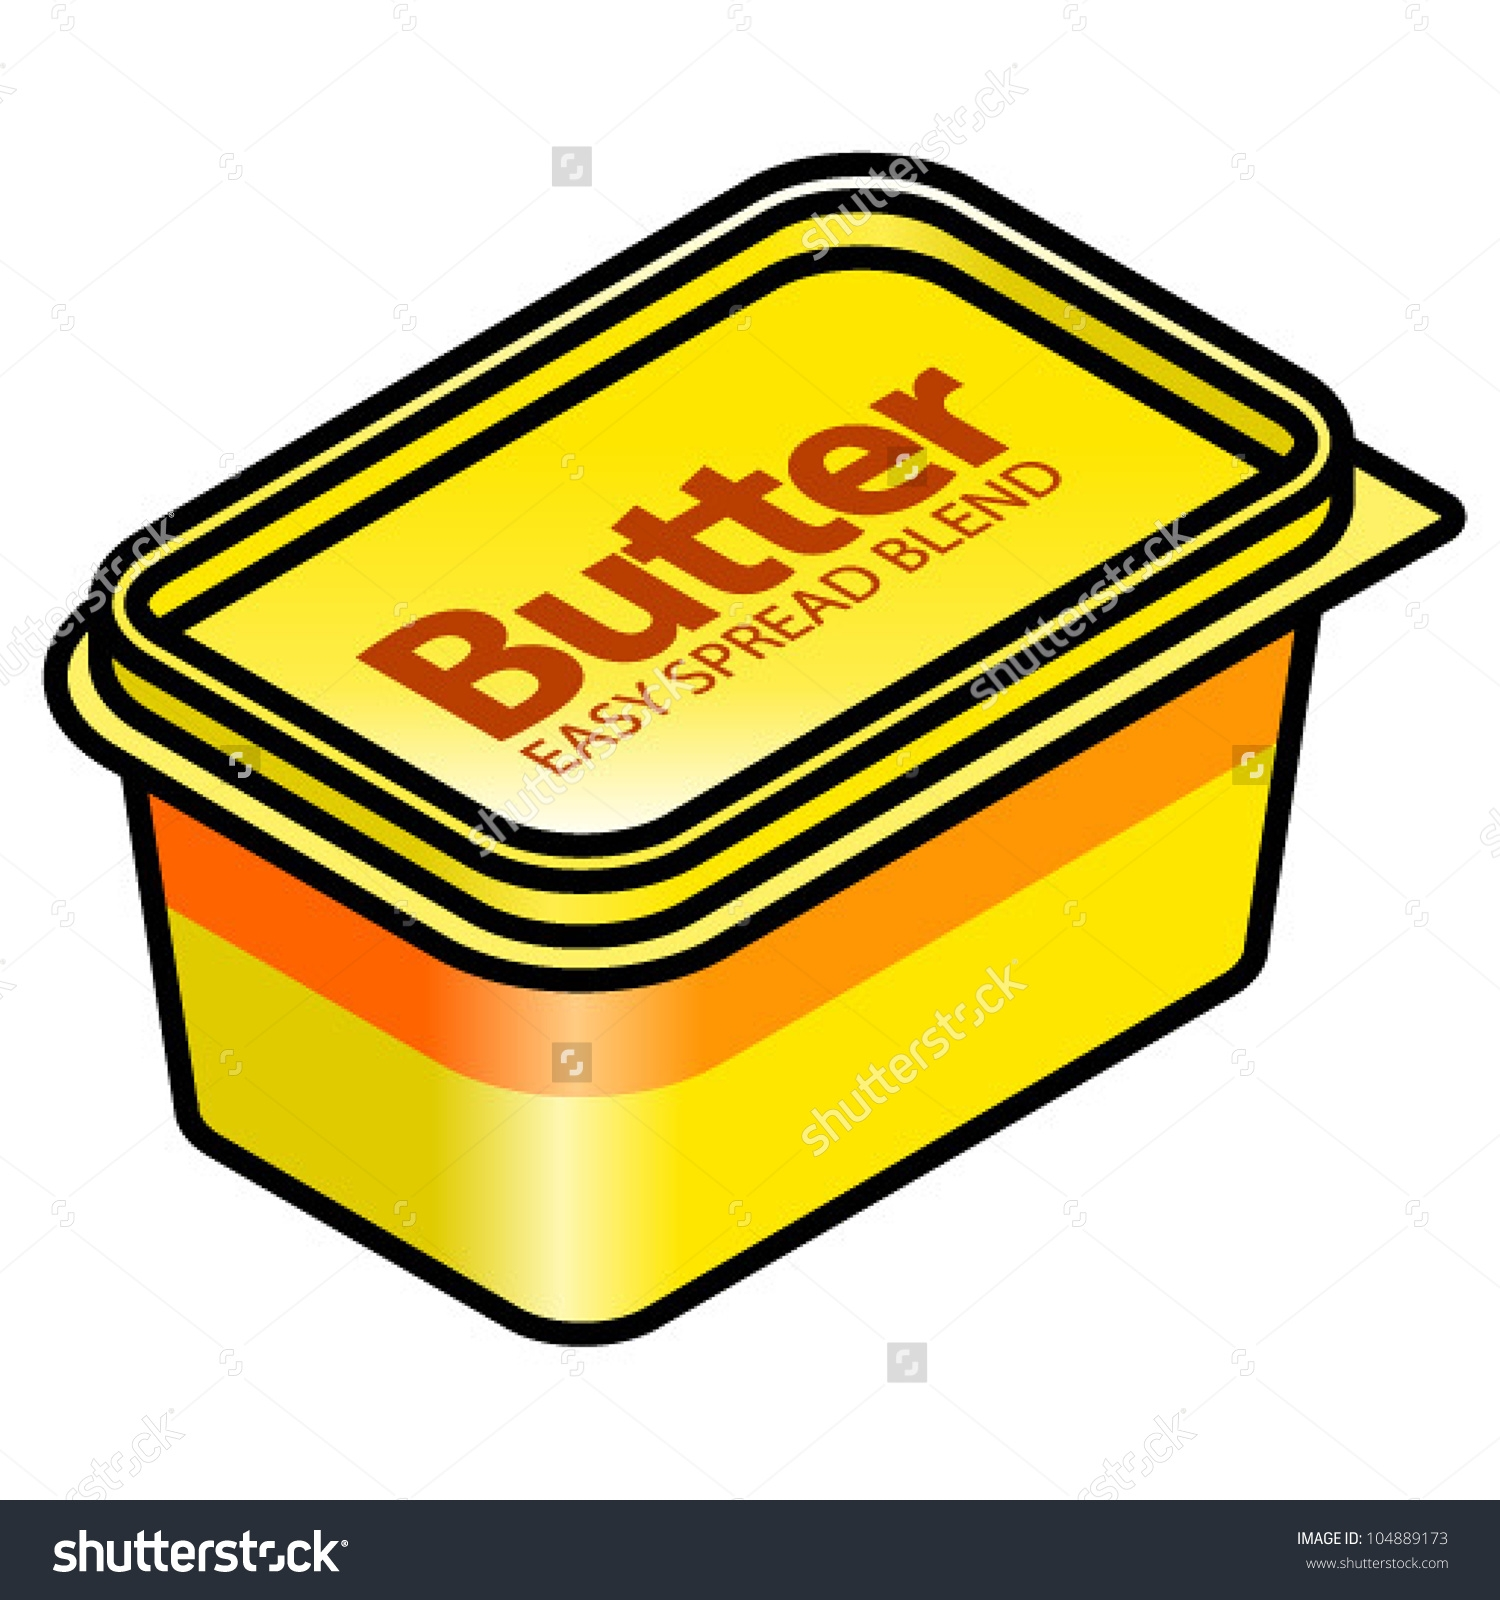 Unique gallery digital collection. Butter clipart